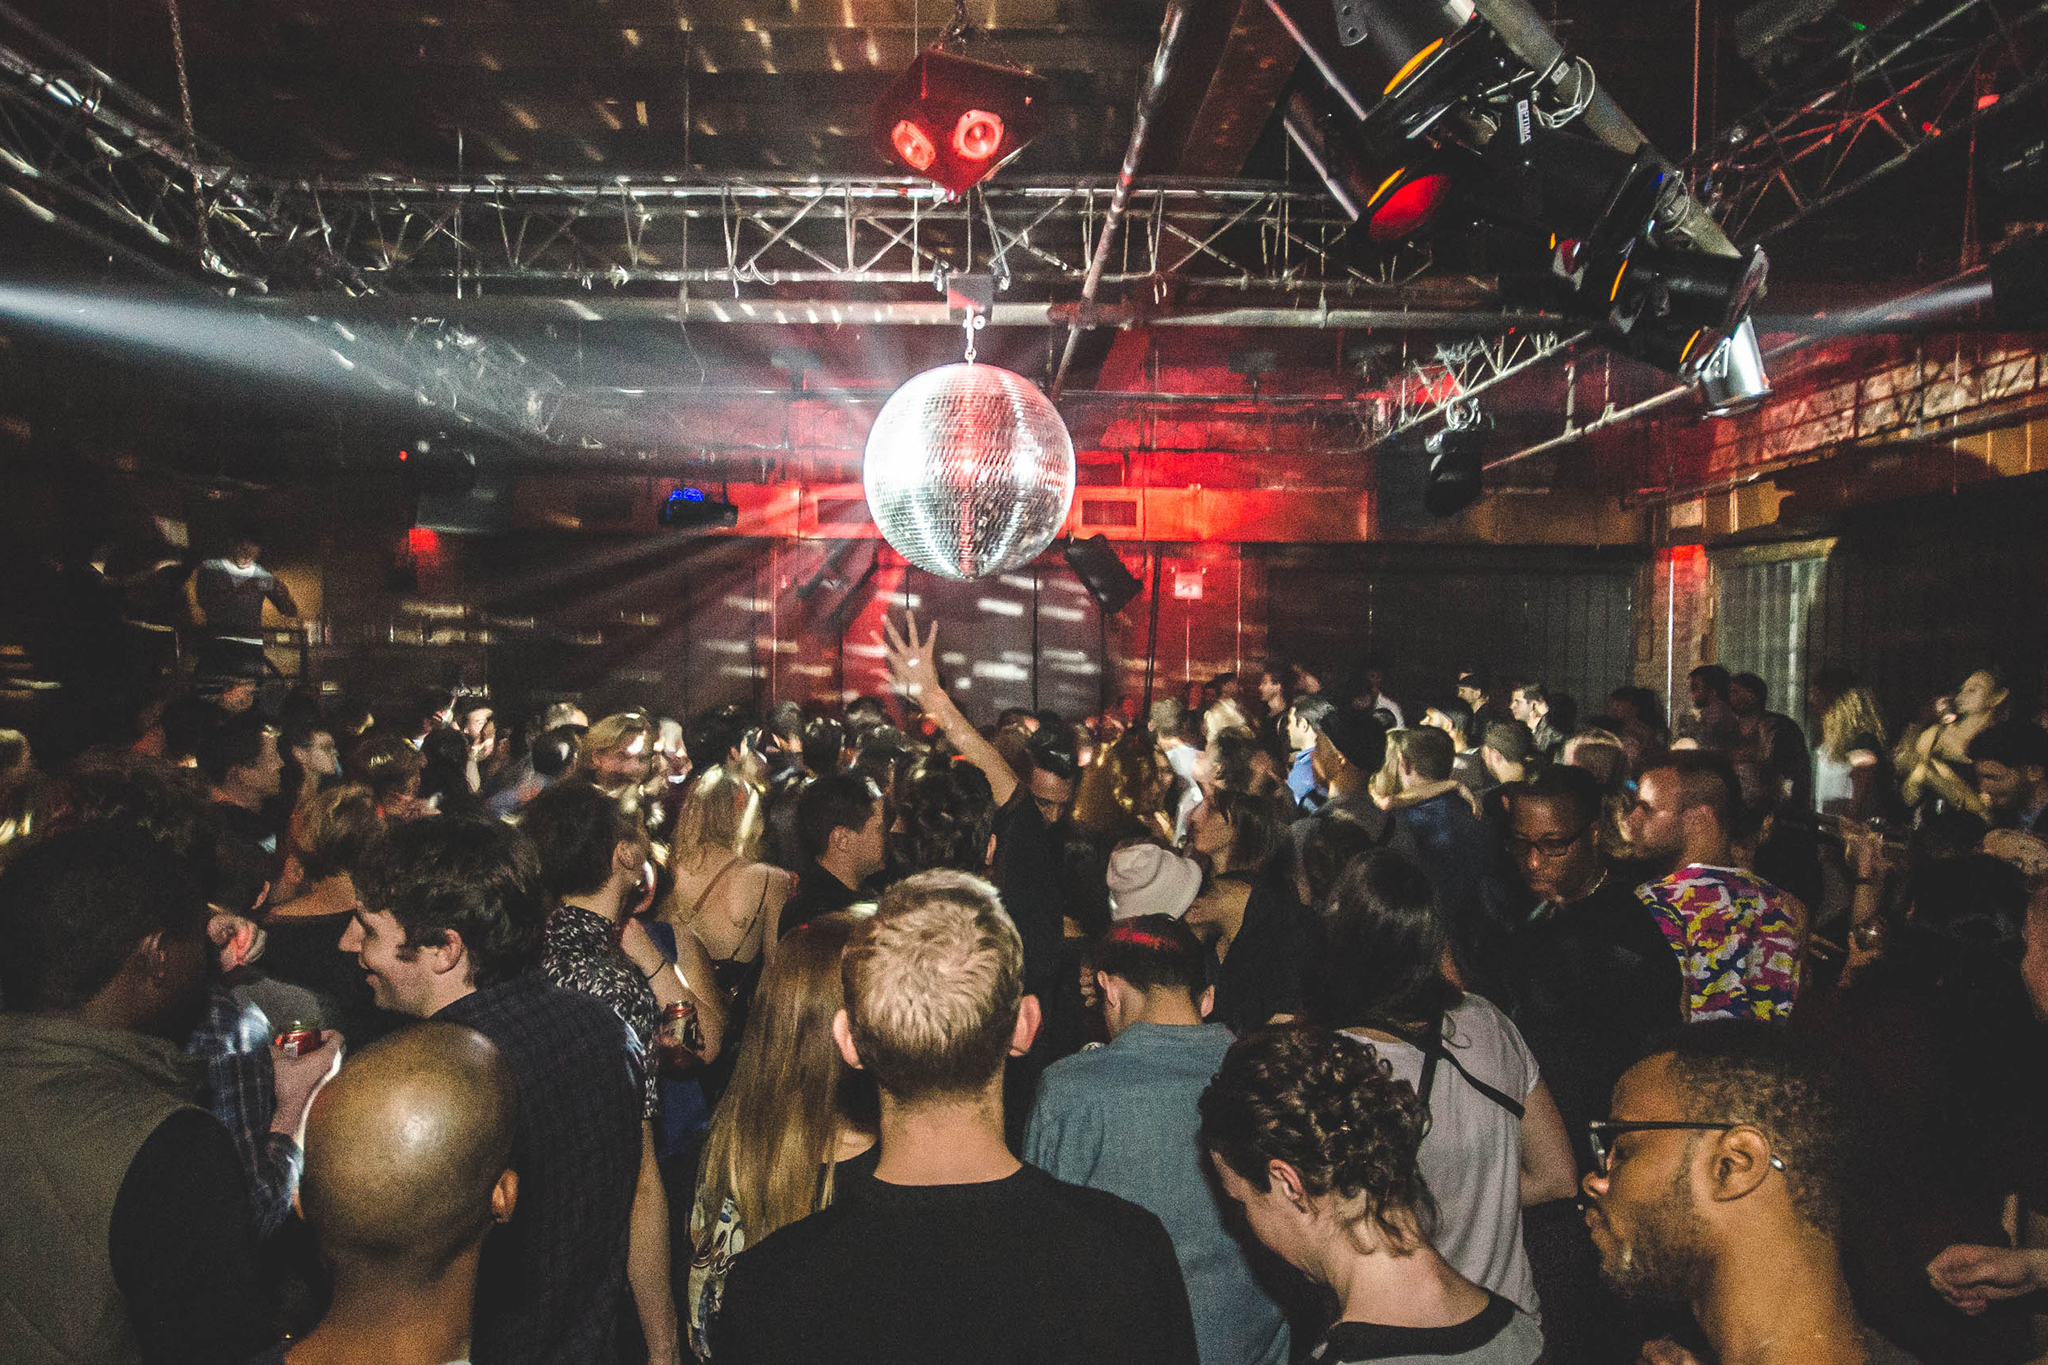 The best places to dance in NYC